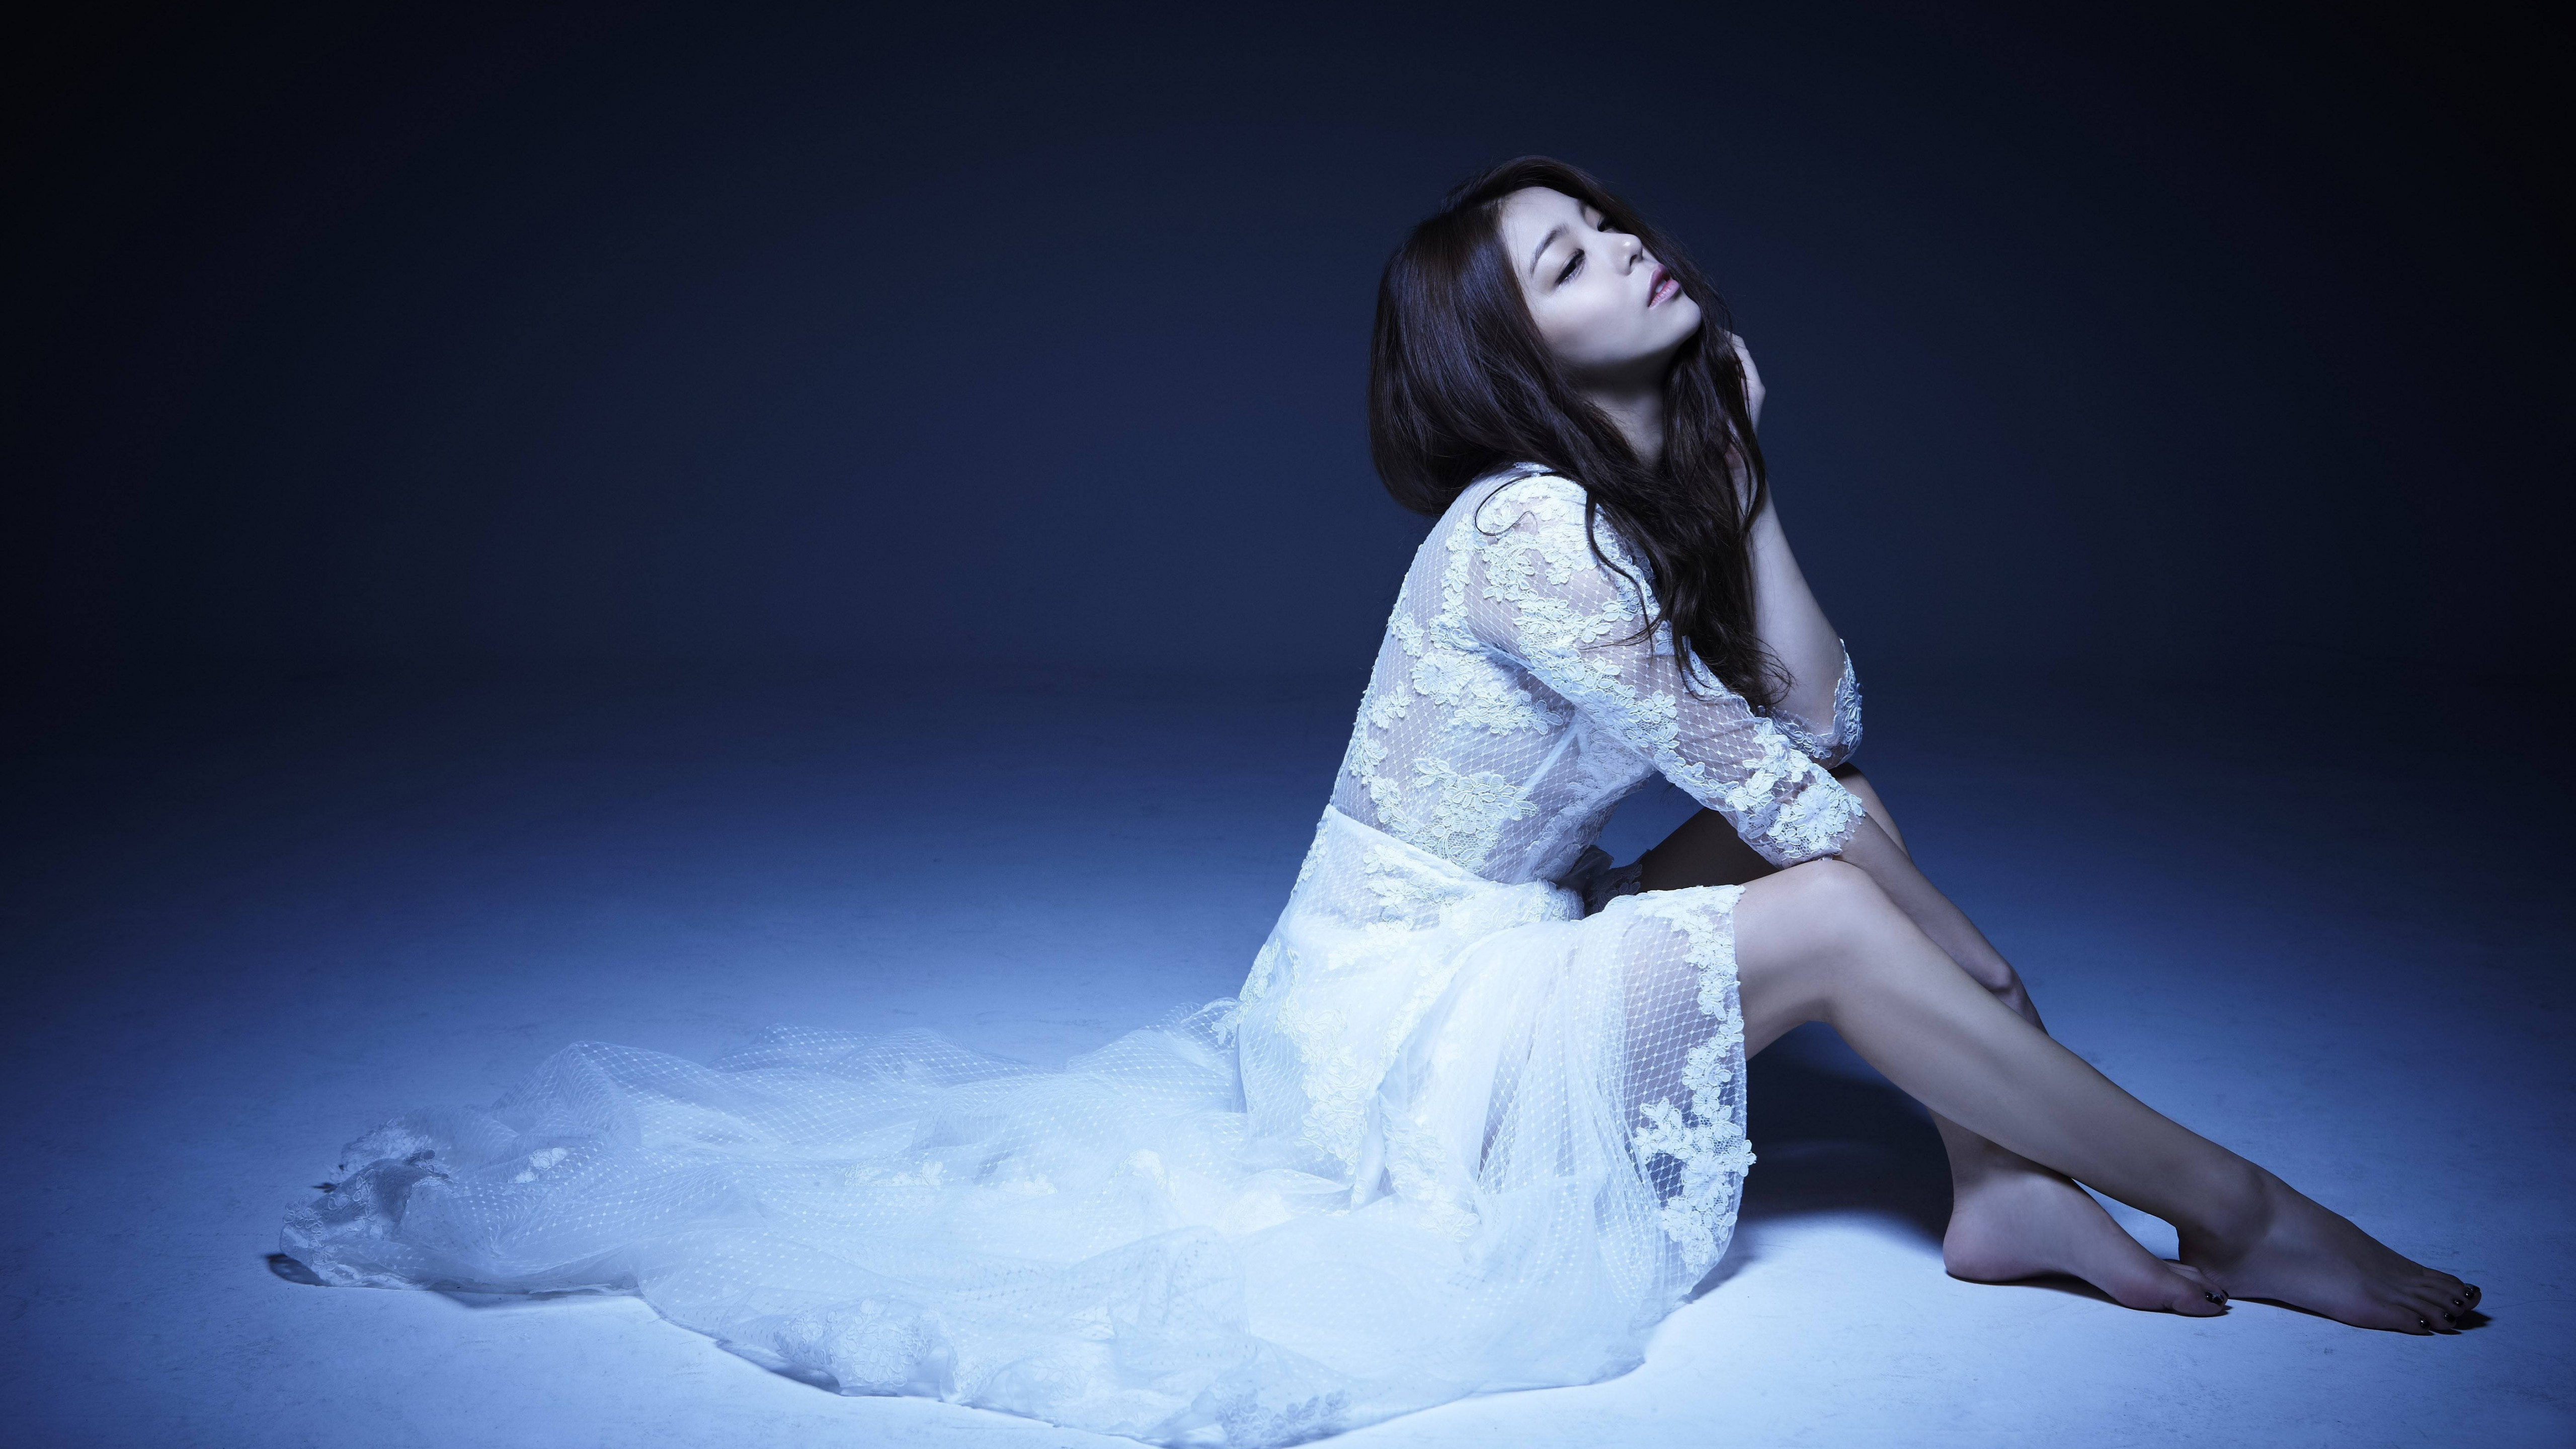 Wallpaper Ailee Top music artist and bands singer Celebrities 4914 5120x2880